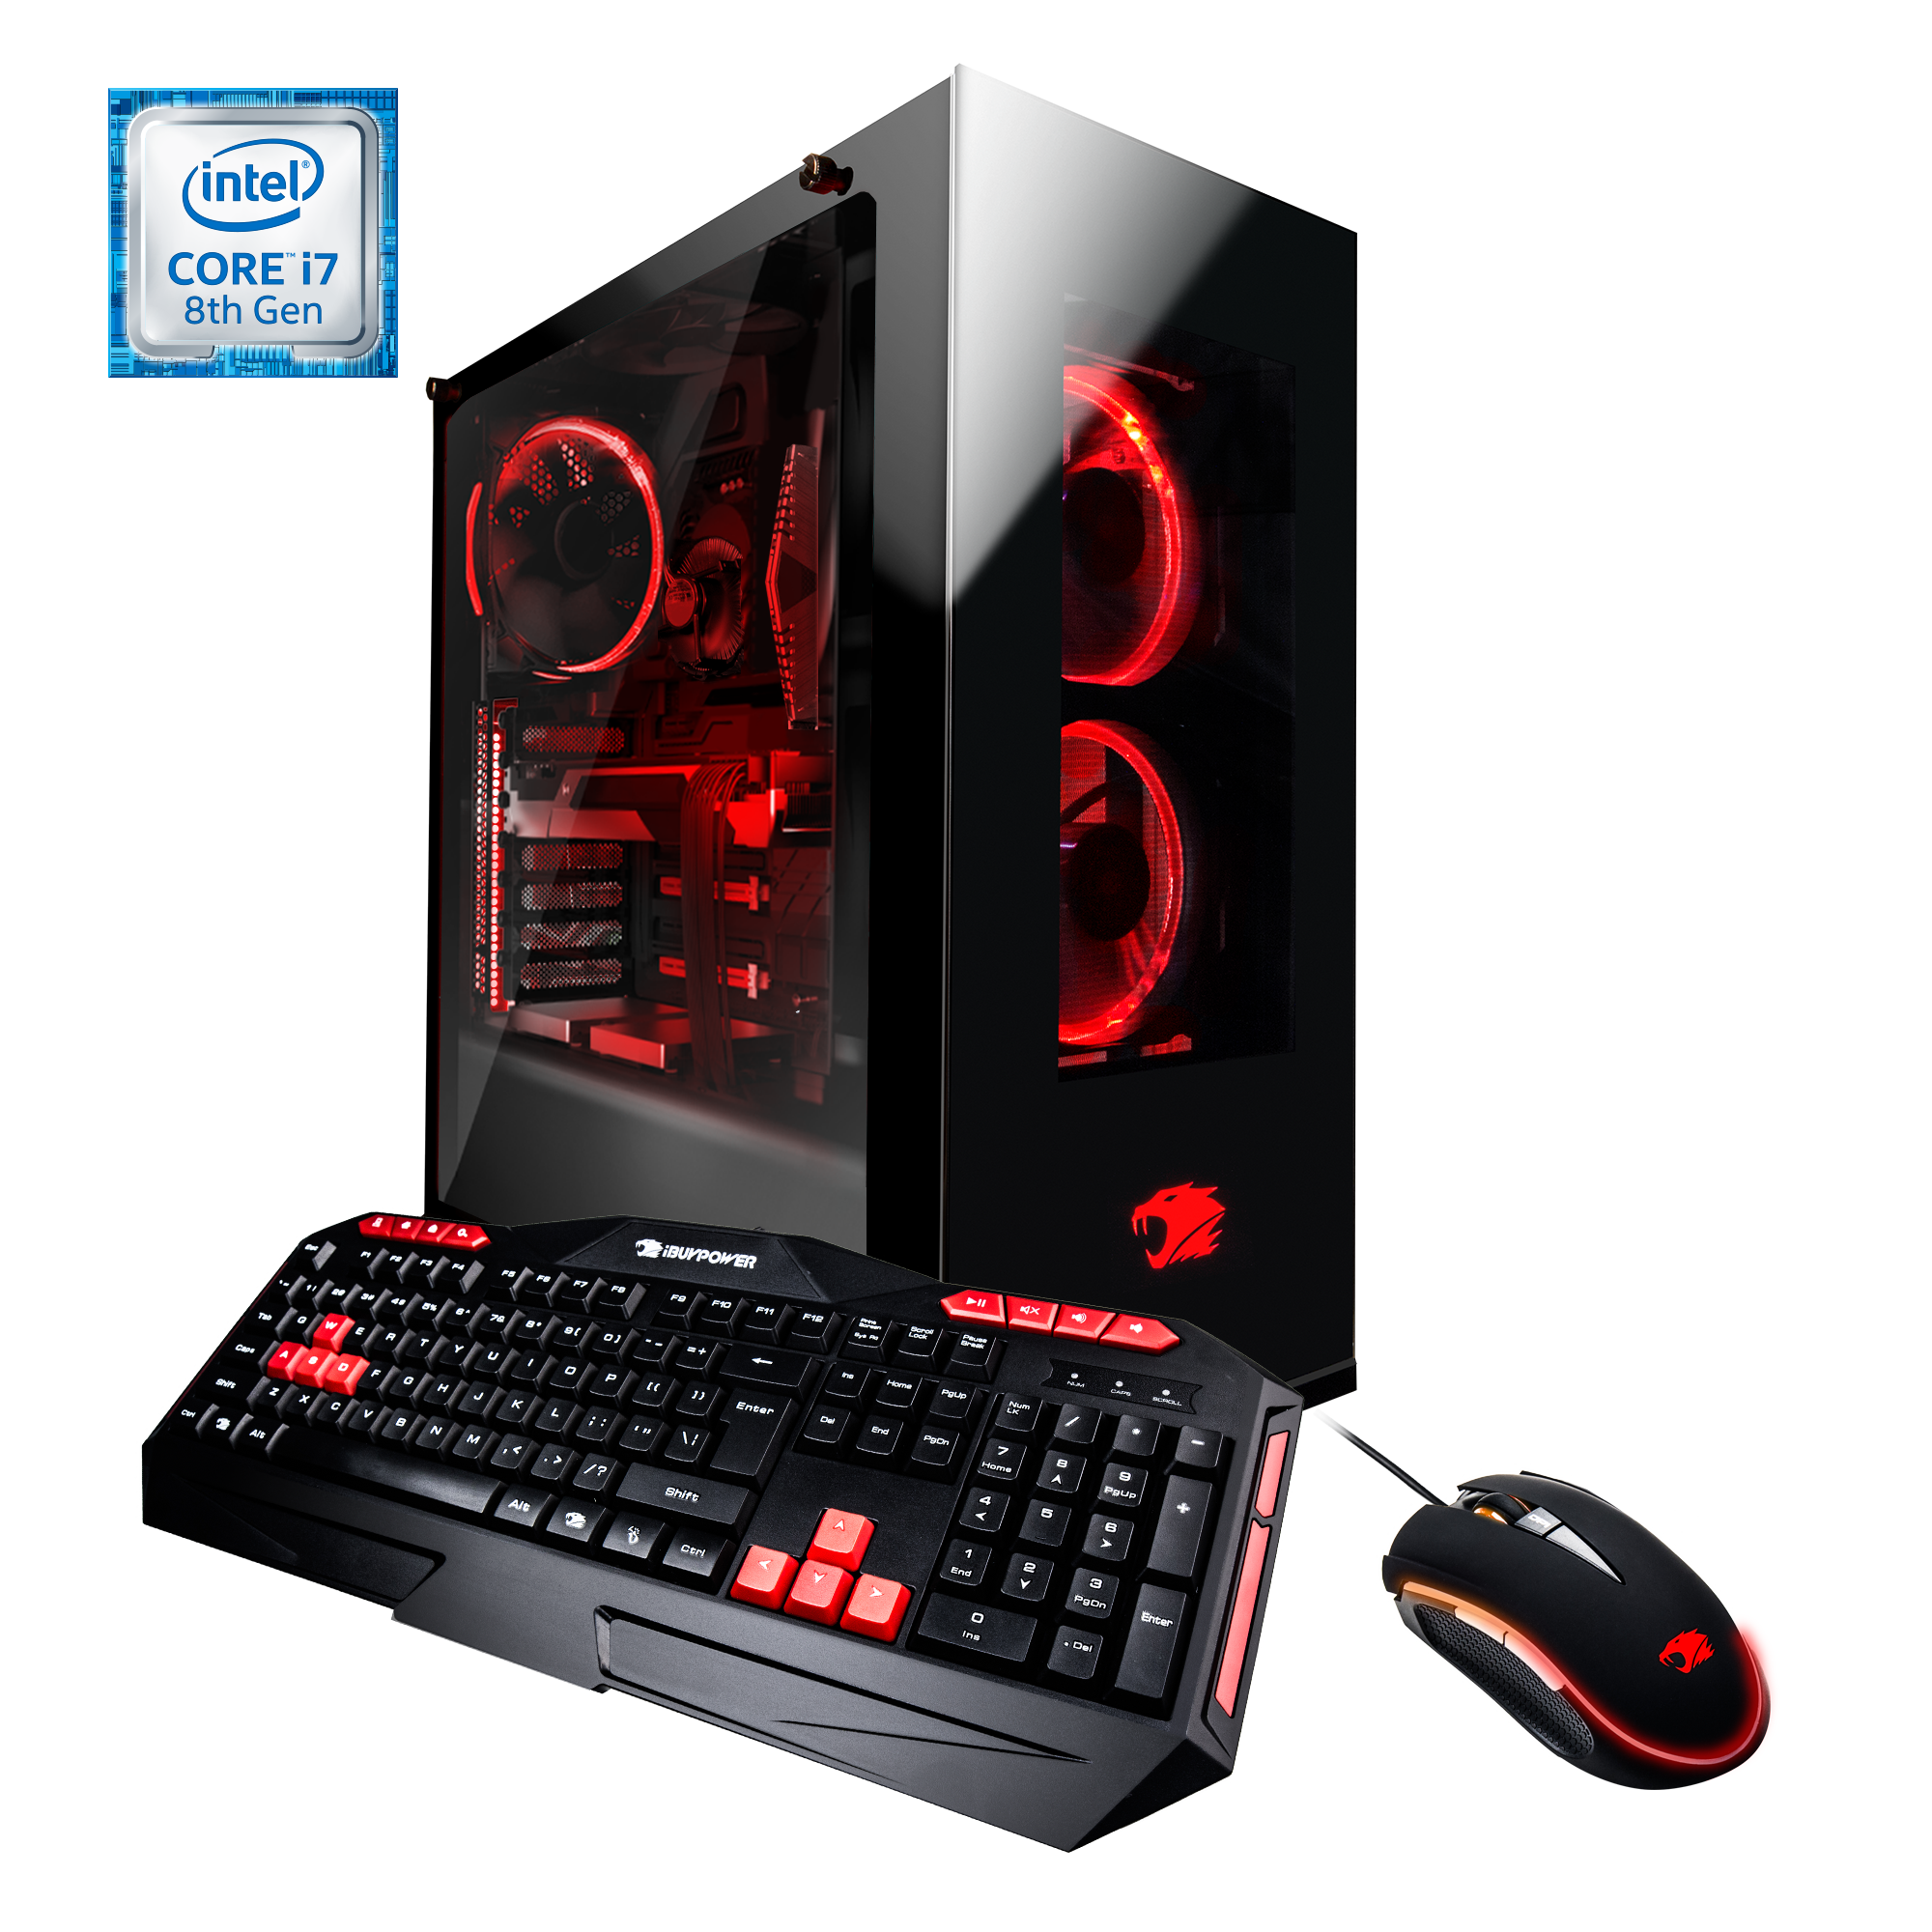 iBUYPOWER WA8400i - Gaming Desktop PC - Intel i7-8700k - 16GB DDR4 Memory - NVIDIA GeForce GTX 1080 8GB - 3TB Hard Drive - Wi-Fi - Window 10 Home 64bit(Monitor Not Included) - WA8400i